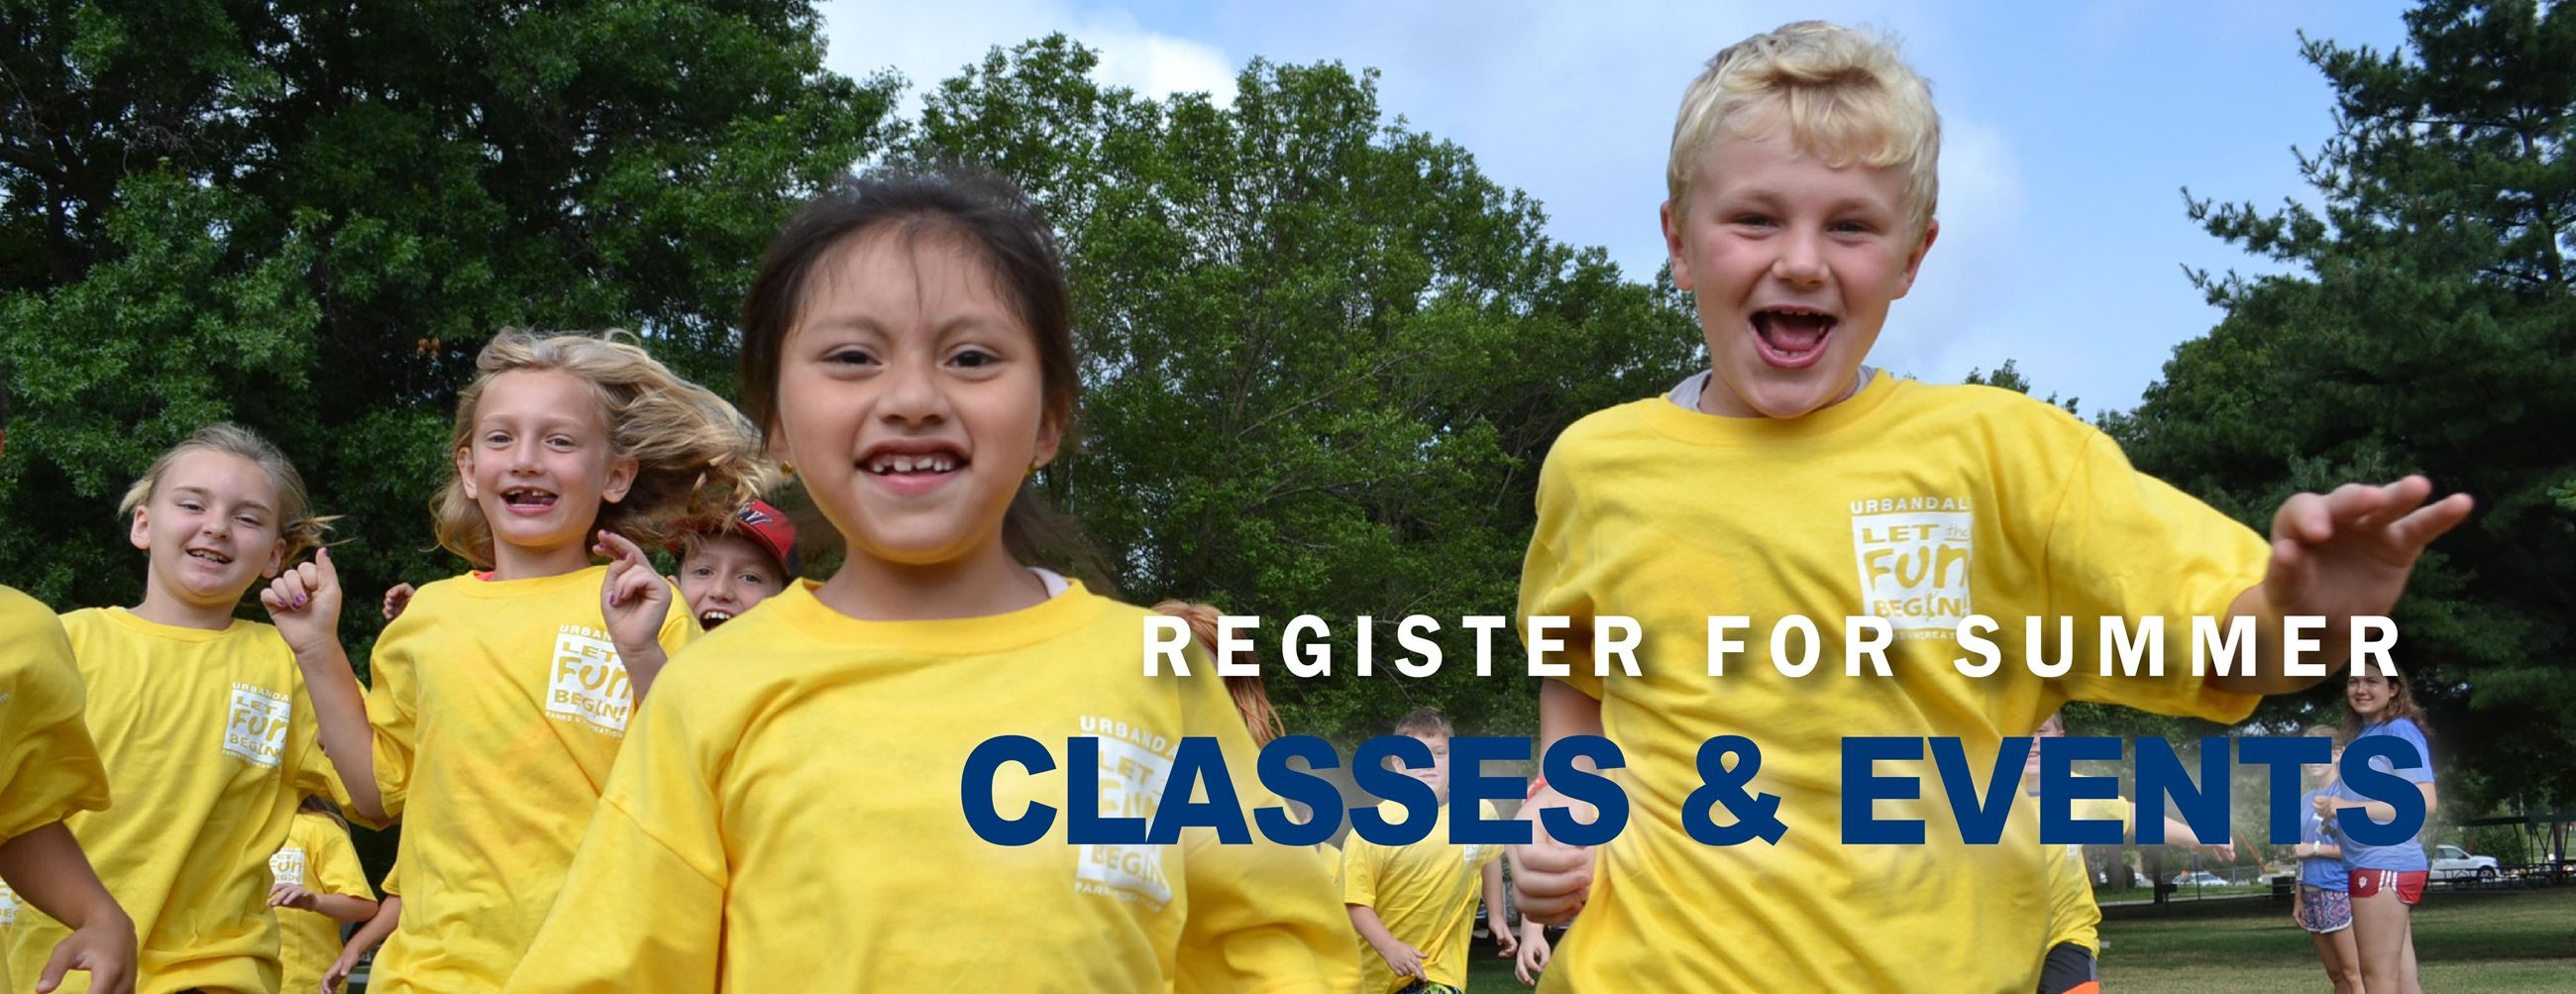 Register for Summer Classes and Events